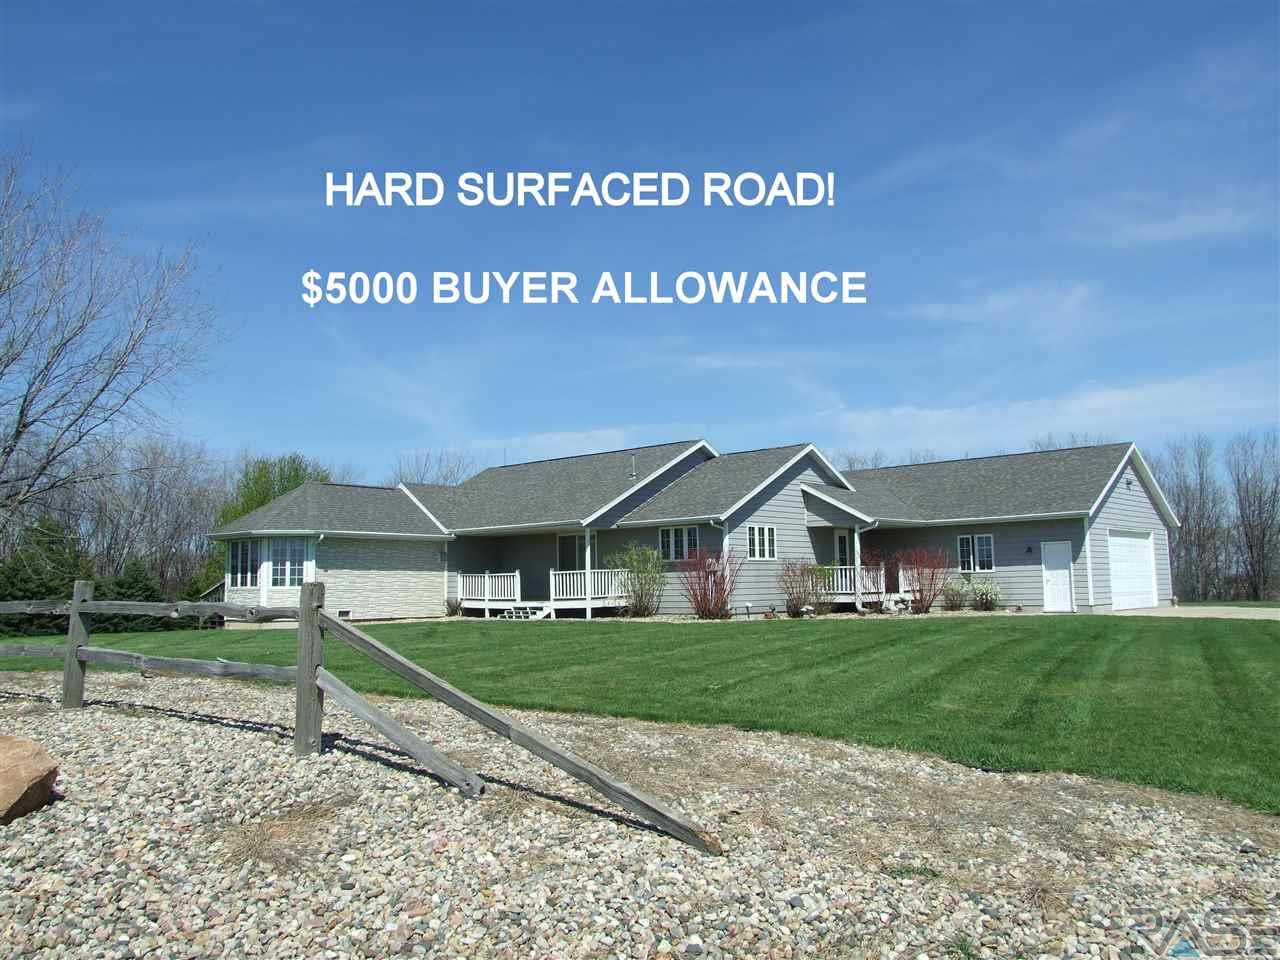 47272 254th St, Baltic, SD 57003